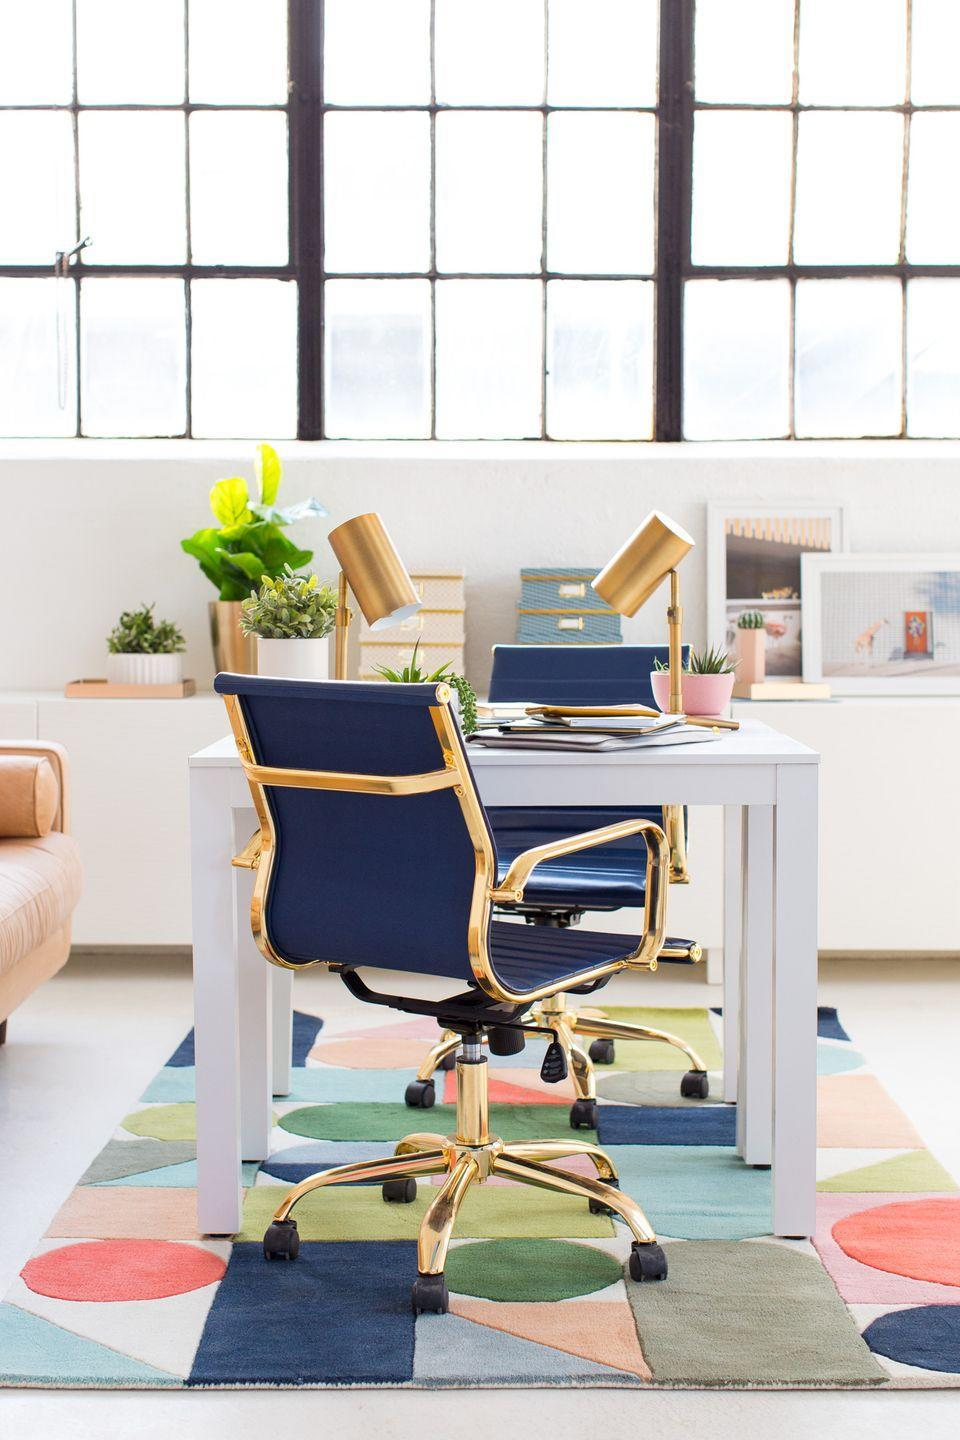 """<p>Your formula for a modern office: white lacquer desk, a geometric rug, and sleek lighting. To make it a little more glam and feminine, add bold color and brass accents. </p><p>See more at <a href=""""https://sugarandcloth.com/modern-interiors-bright-office-space-inspiration/"""" rel=""""nofollow noopener"""" target=""""_blank"""" data-ylk=""""slk:Sugar & Cloth."""" class=""""link rapid-noclick-resp"""">Sugar & Cloth.</a> </p>"""